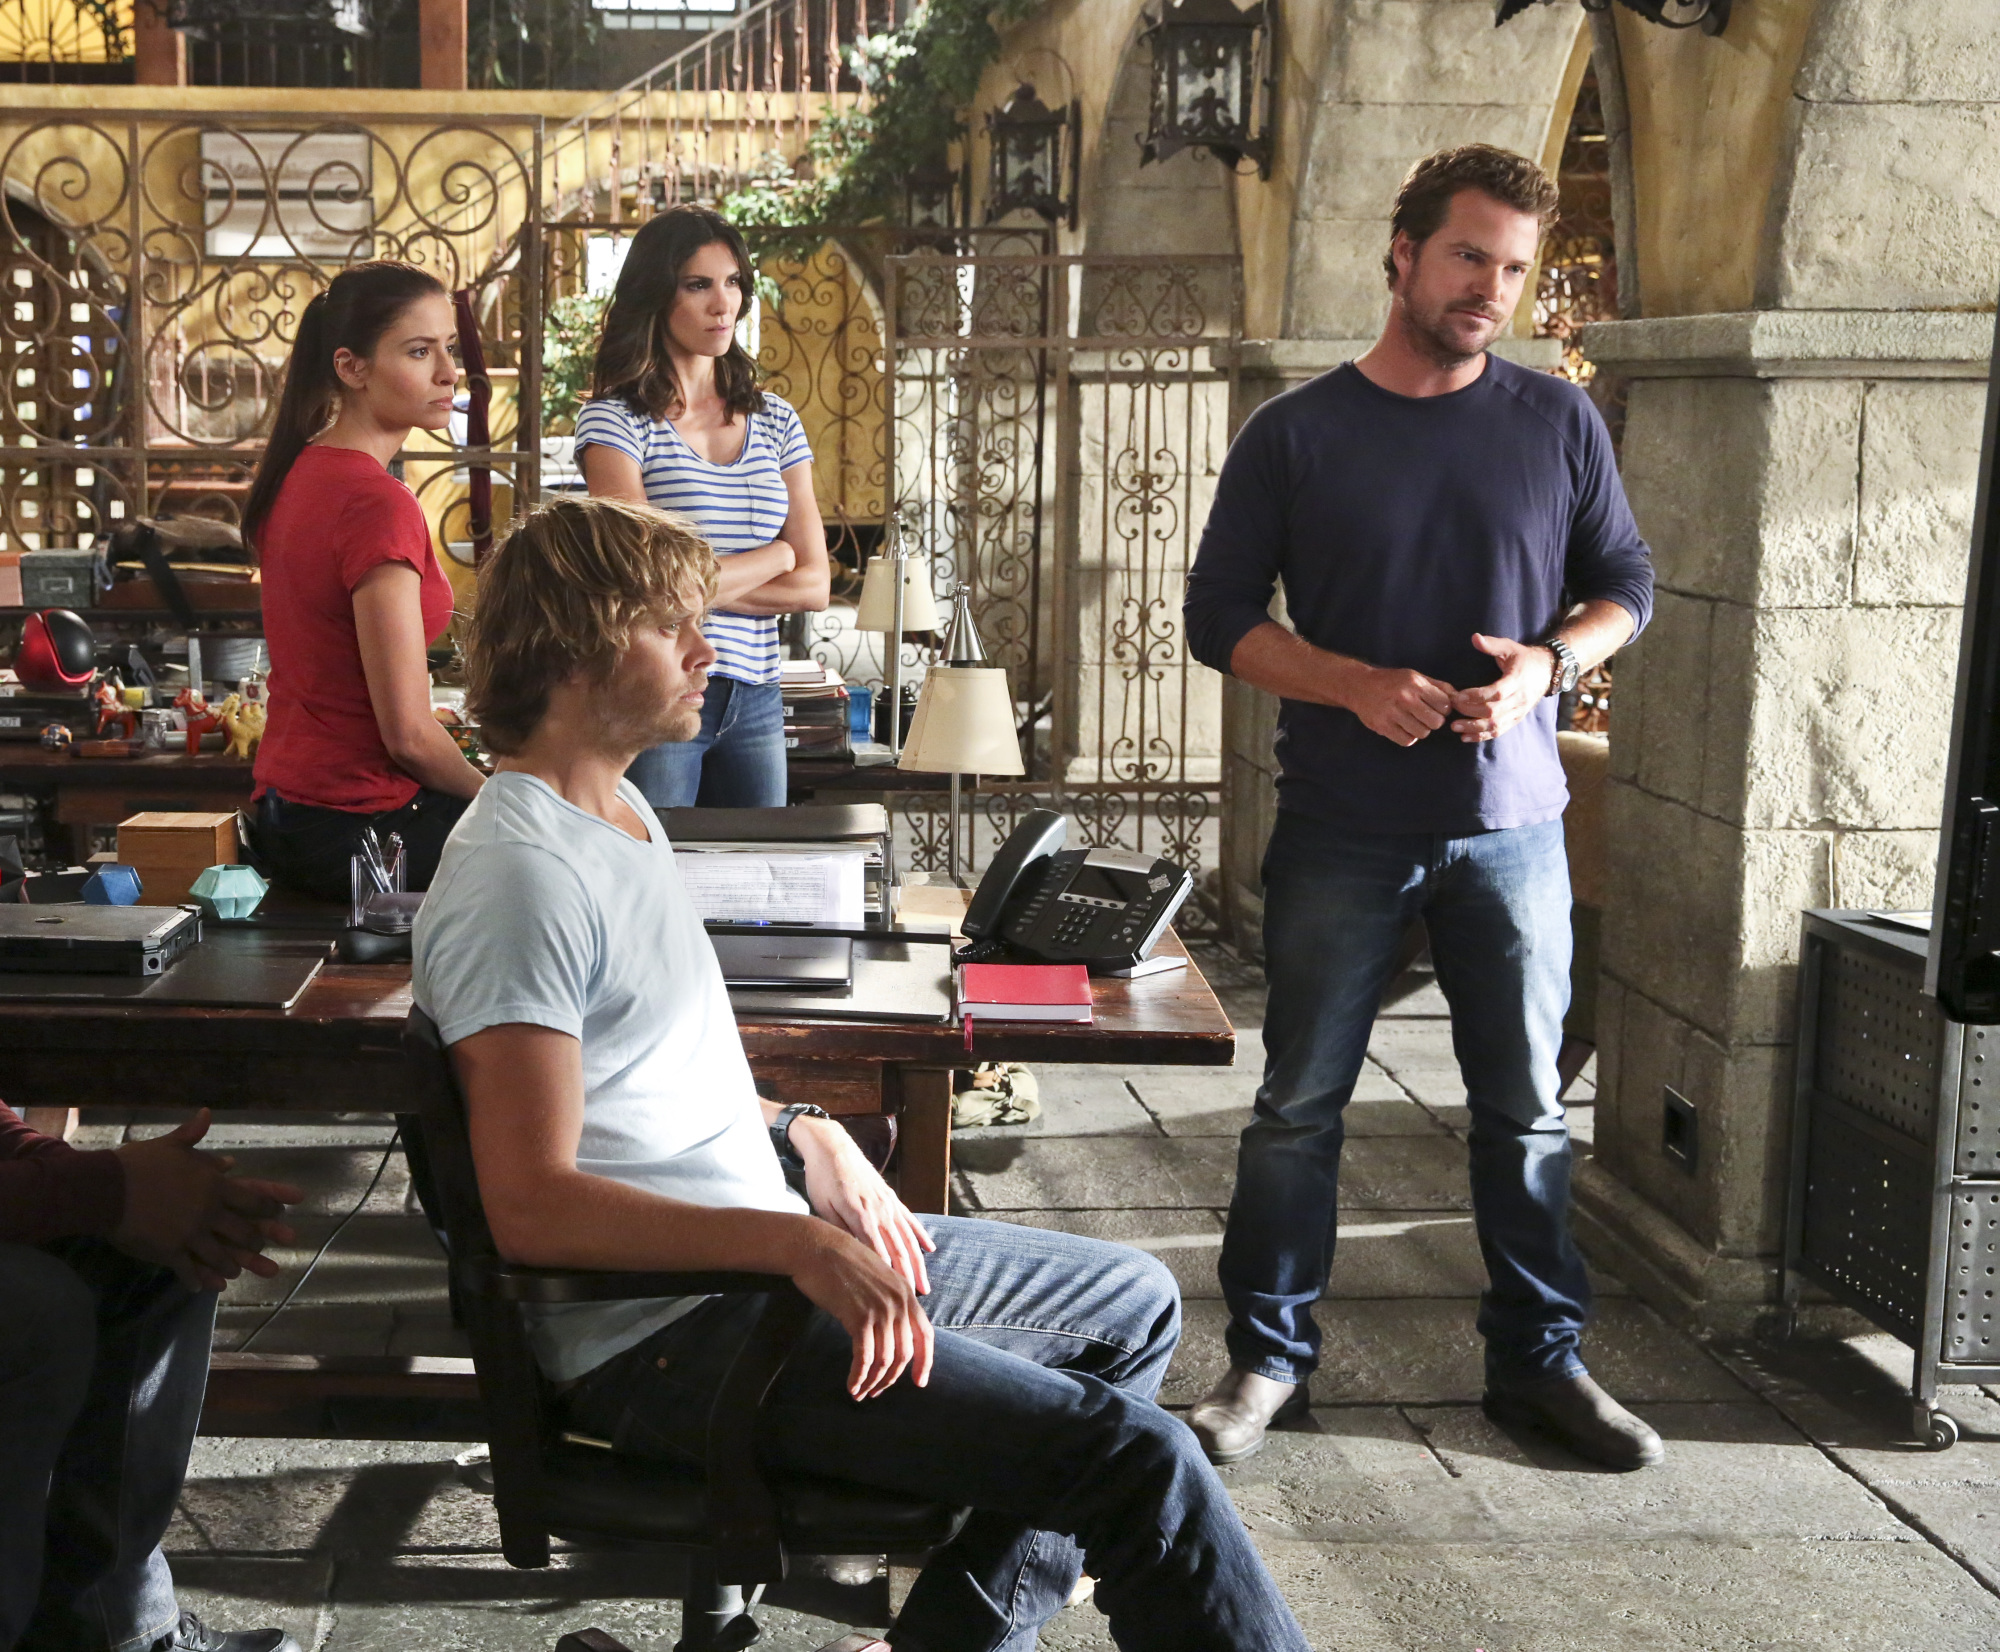 Mercedes Mason as DEA Agent Talia Del Campo, Eric Christian Olsen as LAPD Liaison Marty Deeks, Daniela Ruah as Special Agent Kensi Blye, and Chris O'Donnell as Special Agent G. Callen.